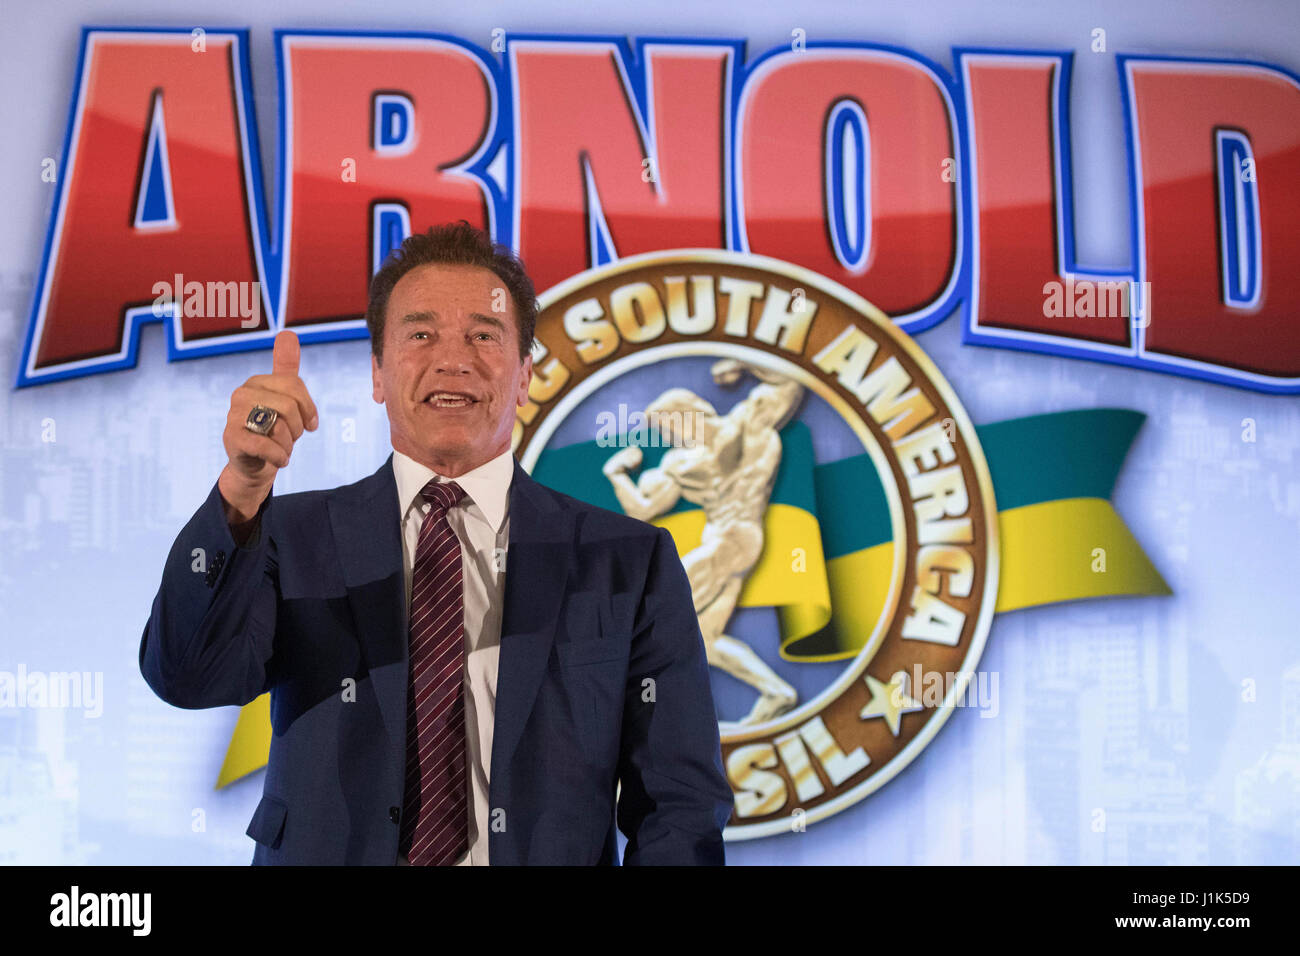 US actor and body builder Arnold Schwarzenegger smiles during a press conference to present the Brazilian edition - Stock-Bilder